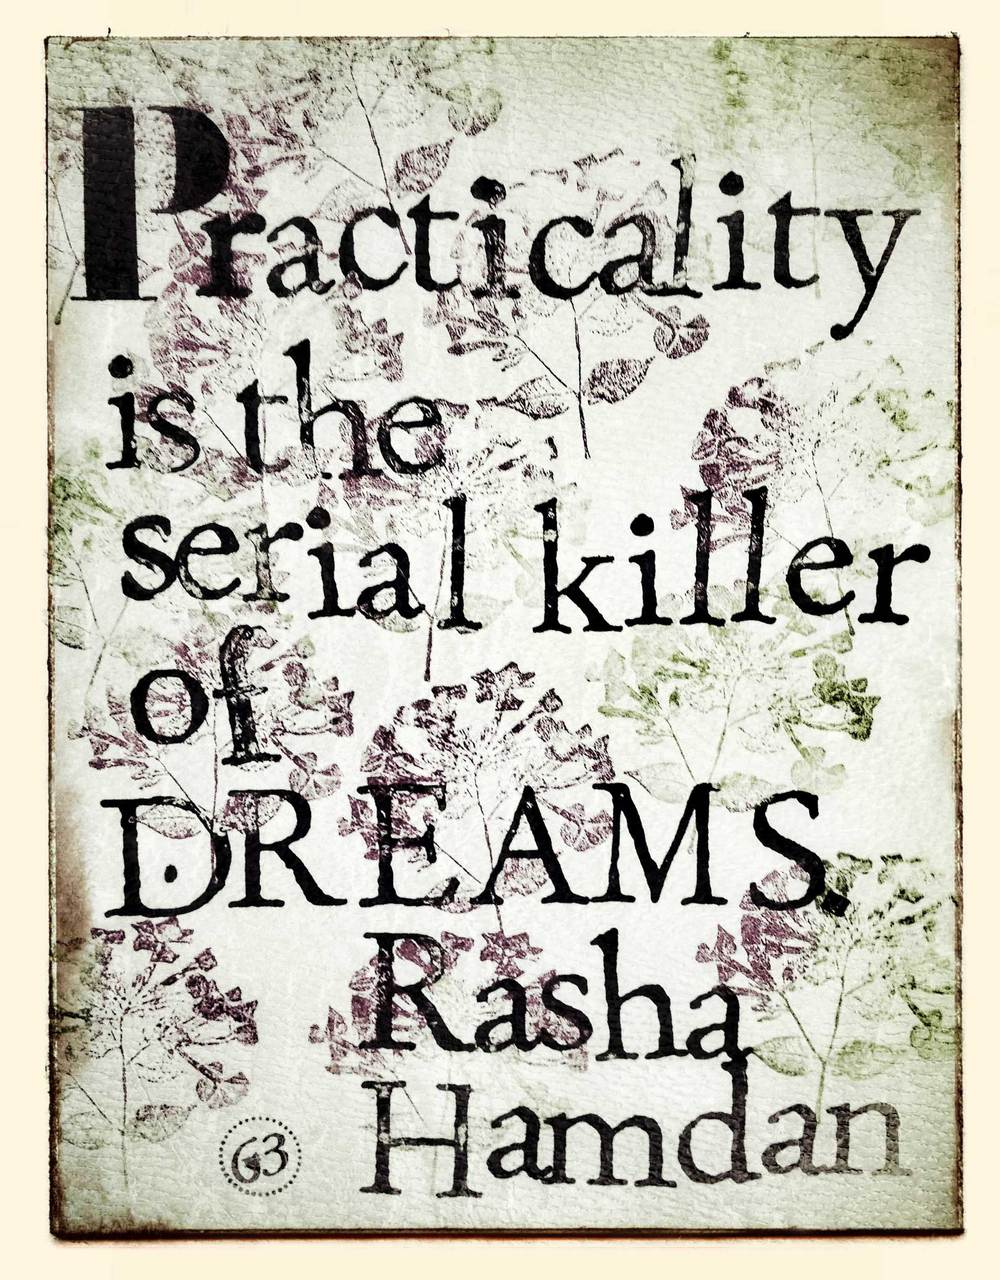 Quote_63_Practicality-is-the-seriral-killer-of-dreams.jpg